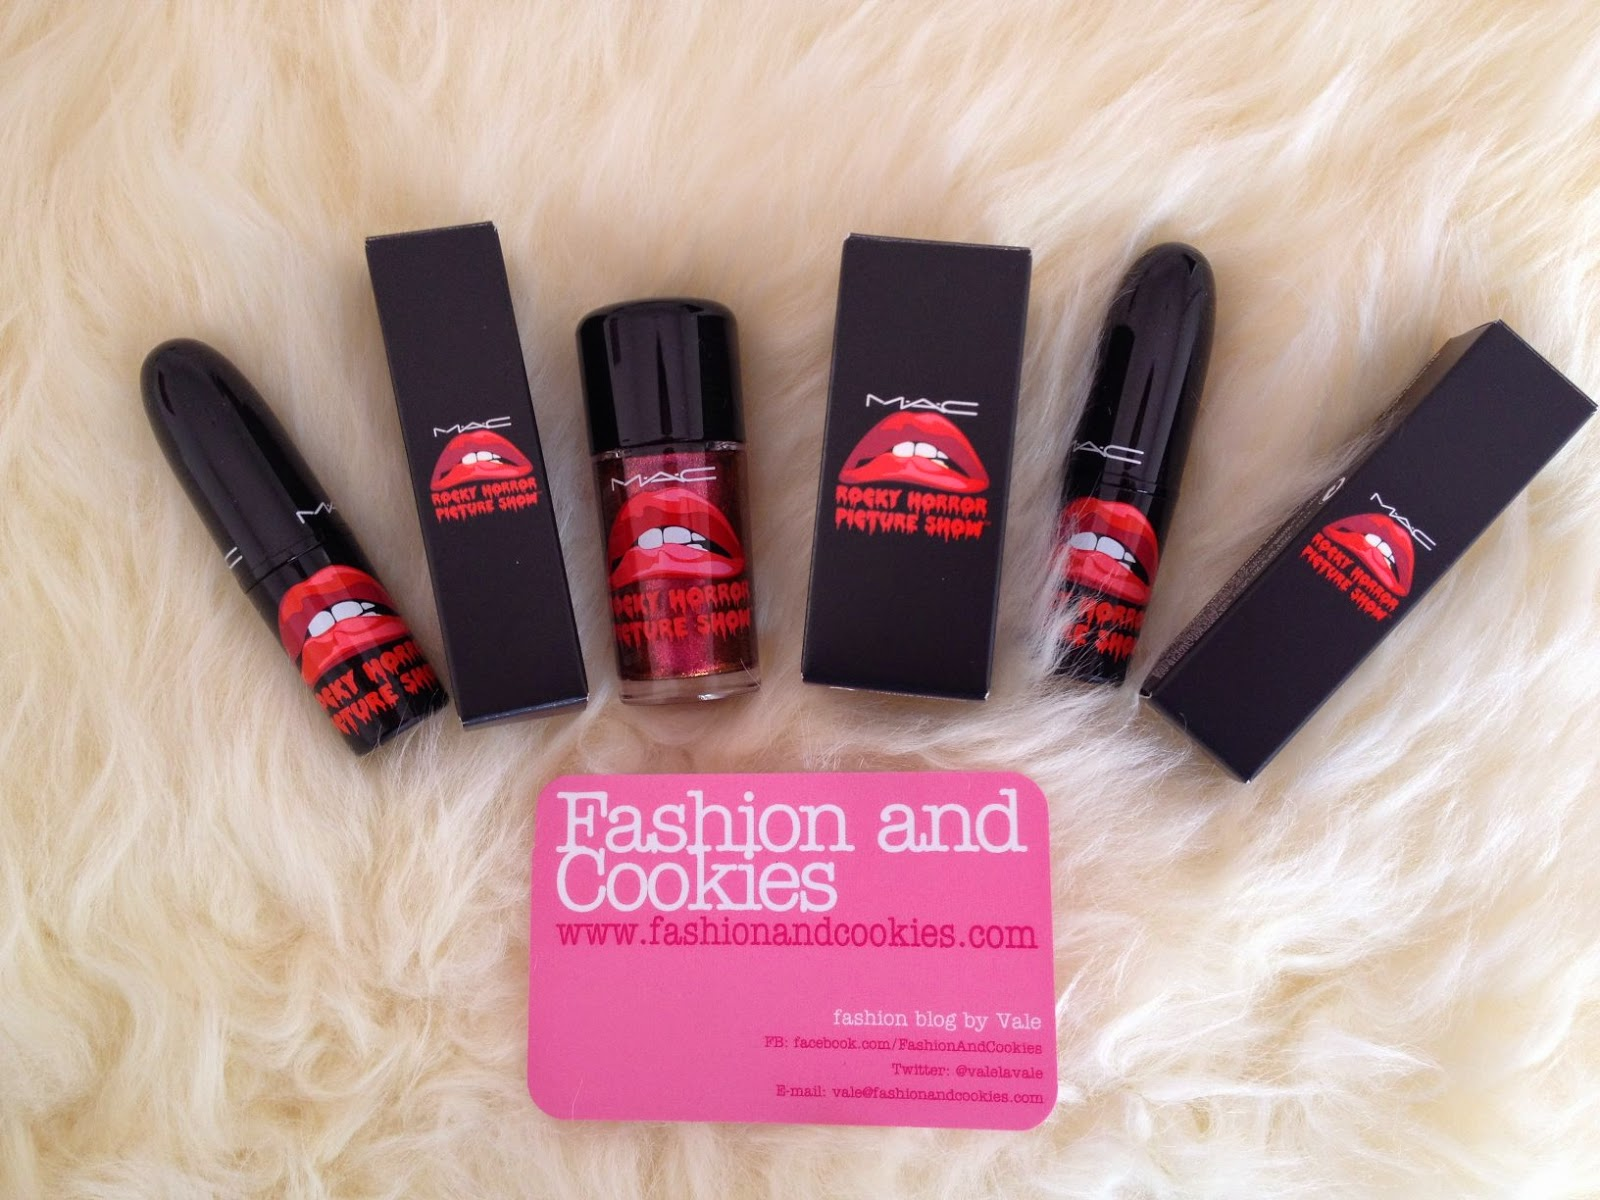 MAC Limited edition makeup, Mac Rocky Horror Picture Show, Oblivion, Strange Journey, Bad Fairy, Fashion and Cookies, fashion blogger